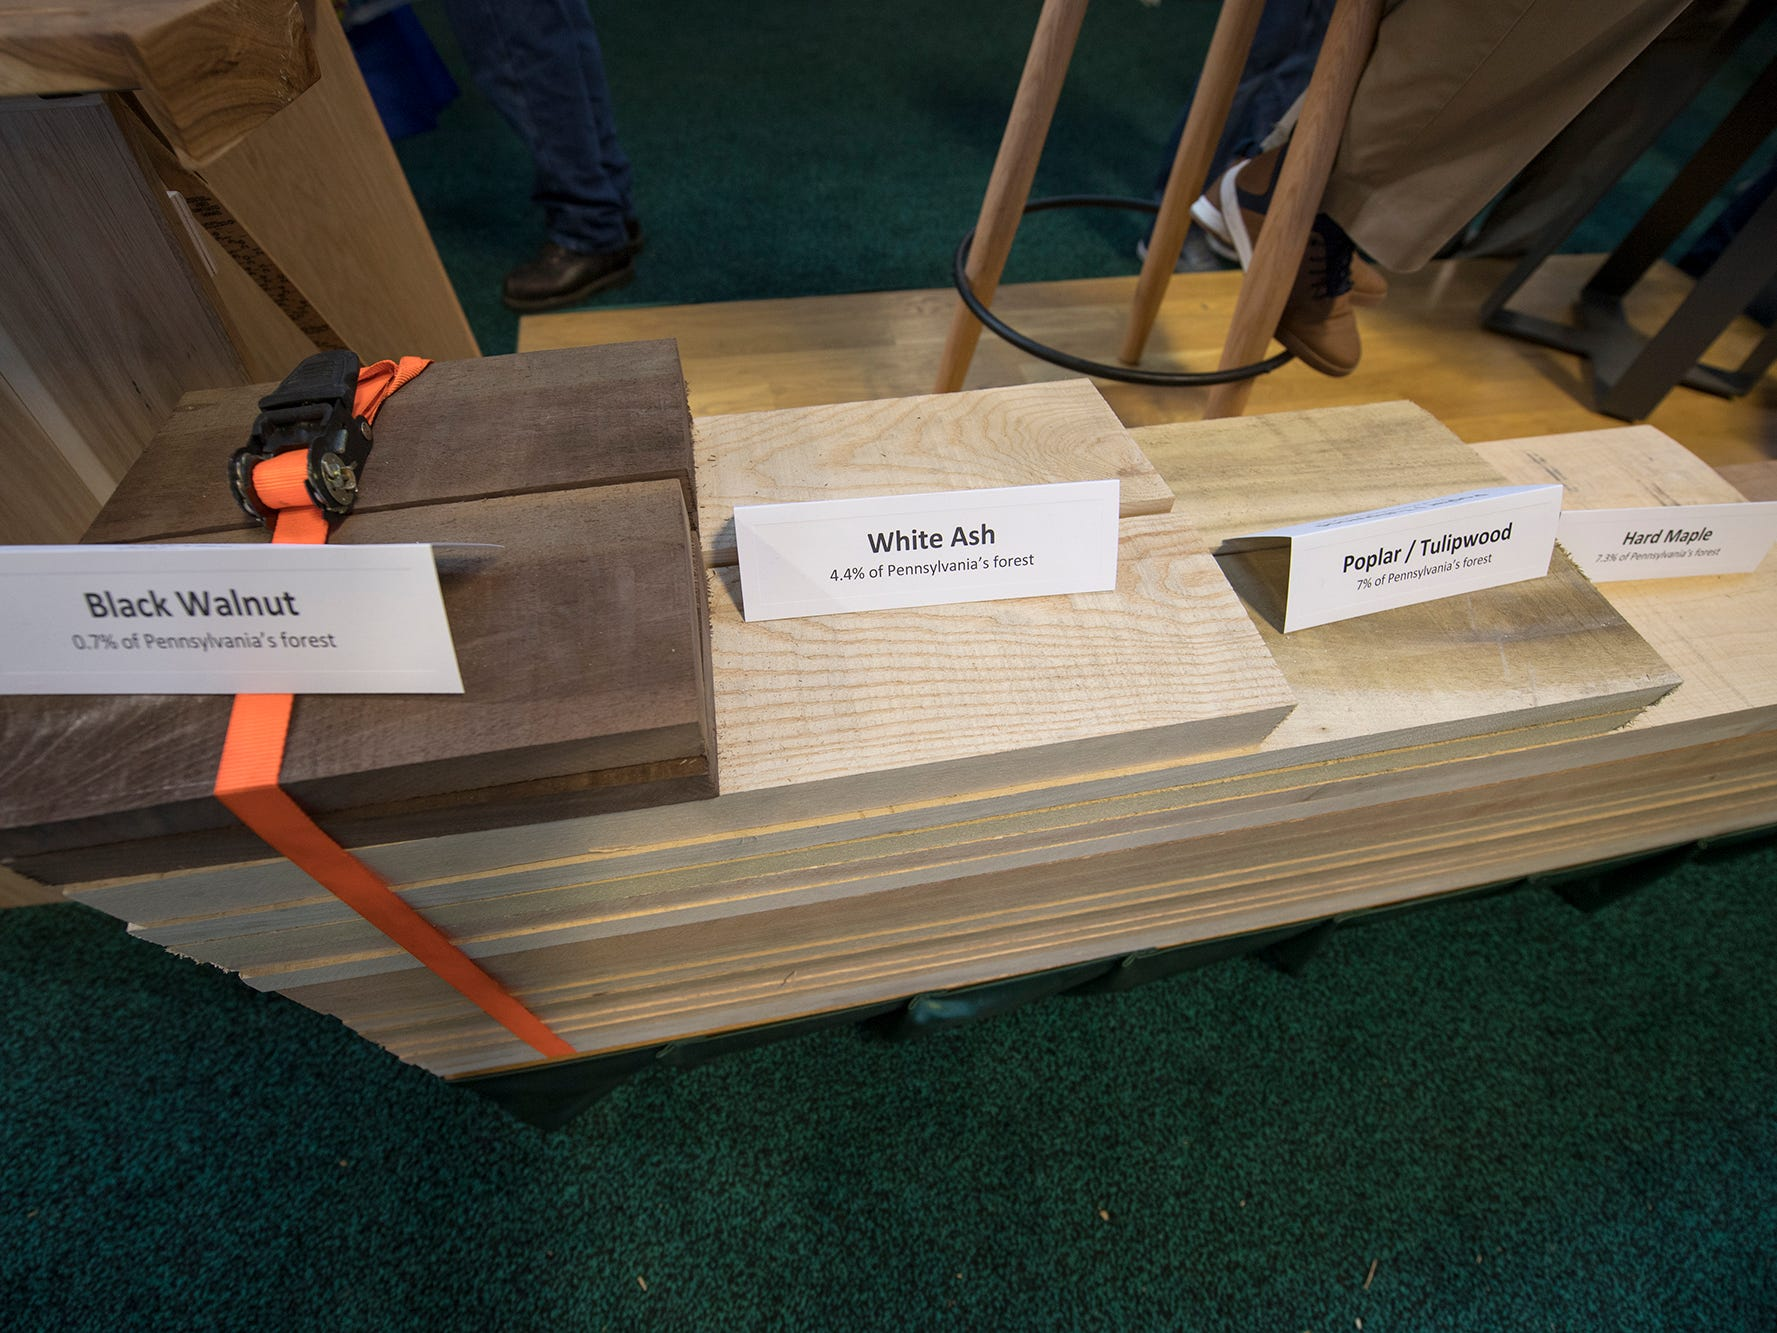 A stack of wood, made from the actual woods described, shows the percentage of each tree in Pennsylvania forests at the Pennsylvania Hardwood Association display during The 103rd Pennsylvania Farm Show in Harrisburg Sunday January 6, 2019.